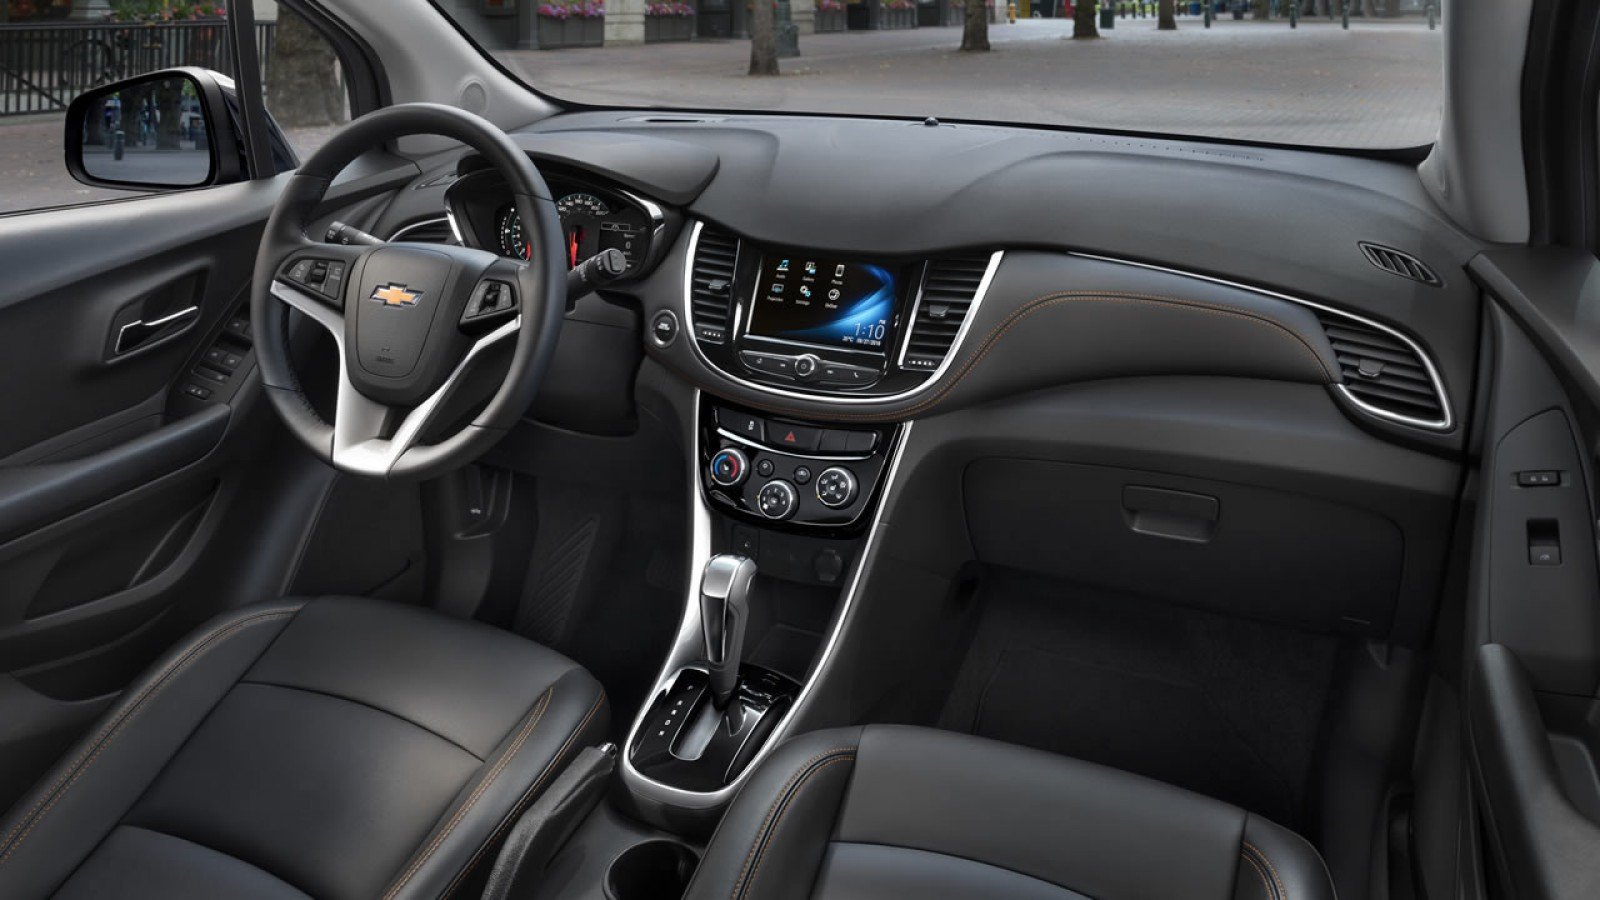 2013 chevy aveo with Chevrolet Trax 2018 Mexico Versiones on Watch moreover Chevrolet Aveo 1 4 Ltz Review also Watch also Chevrolet Chevy Van 6 2 1986 Specs And Images also Watch.